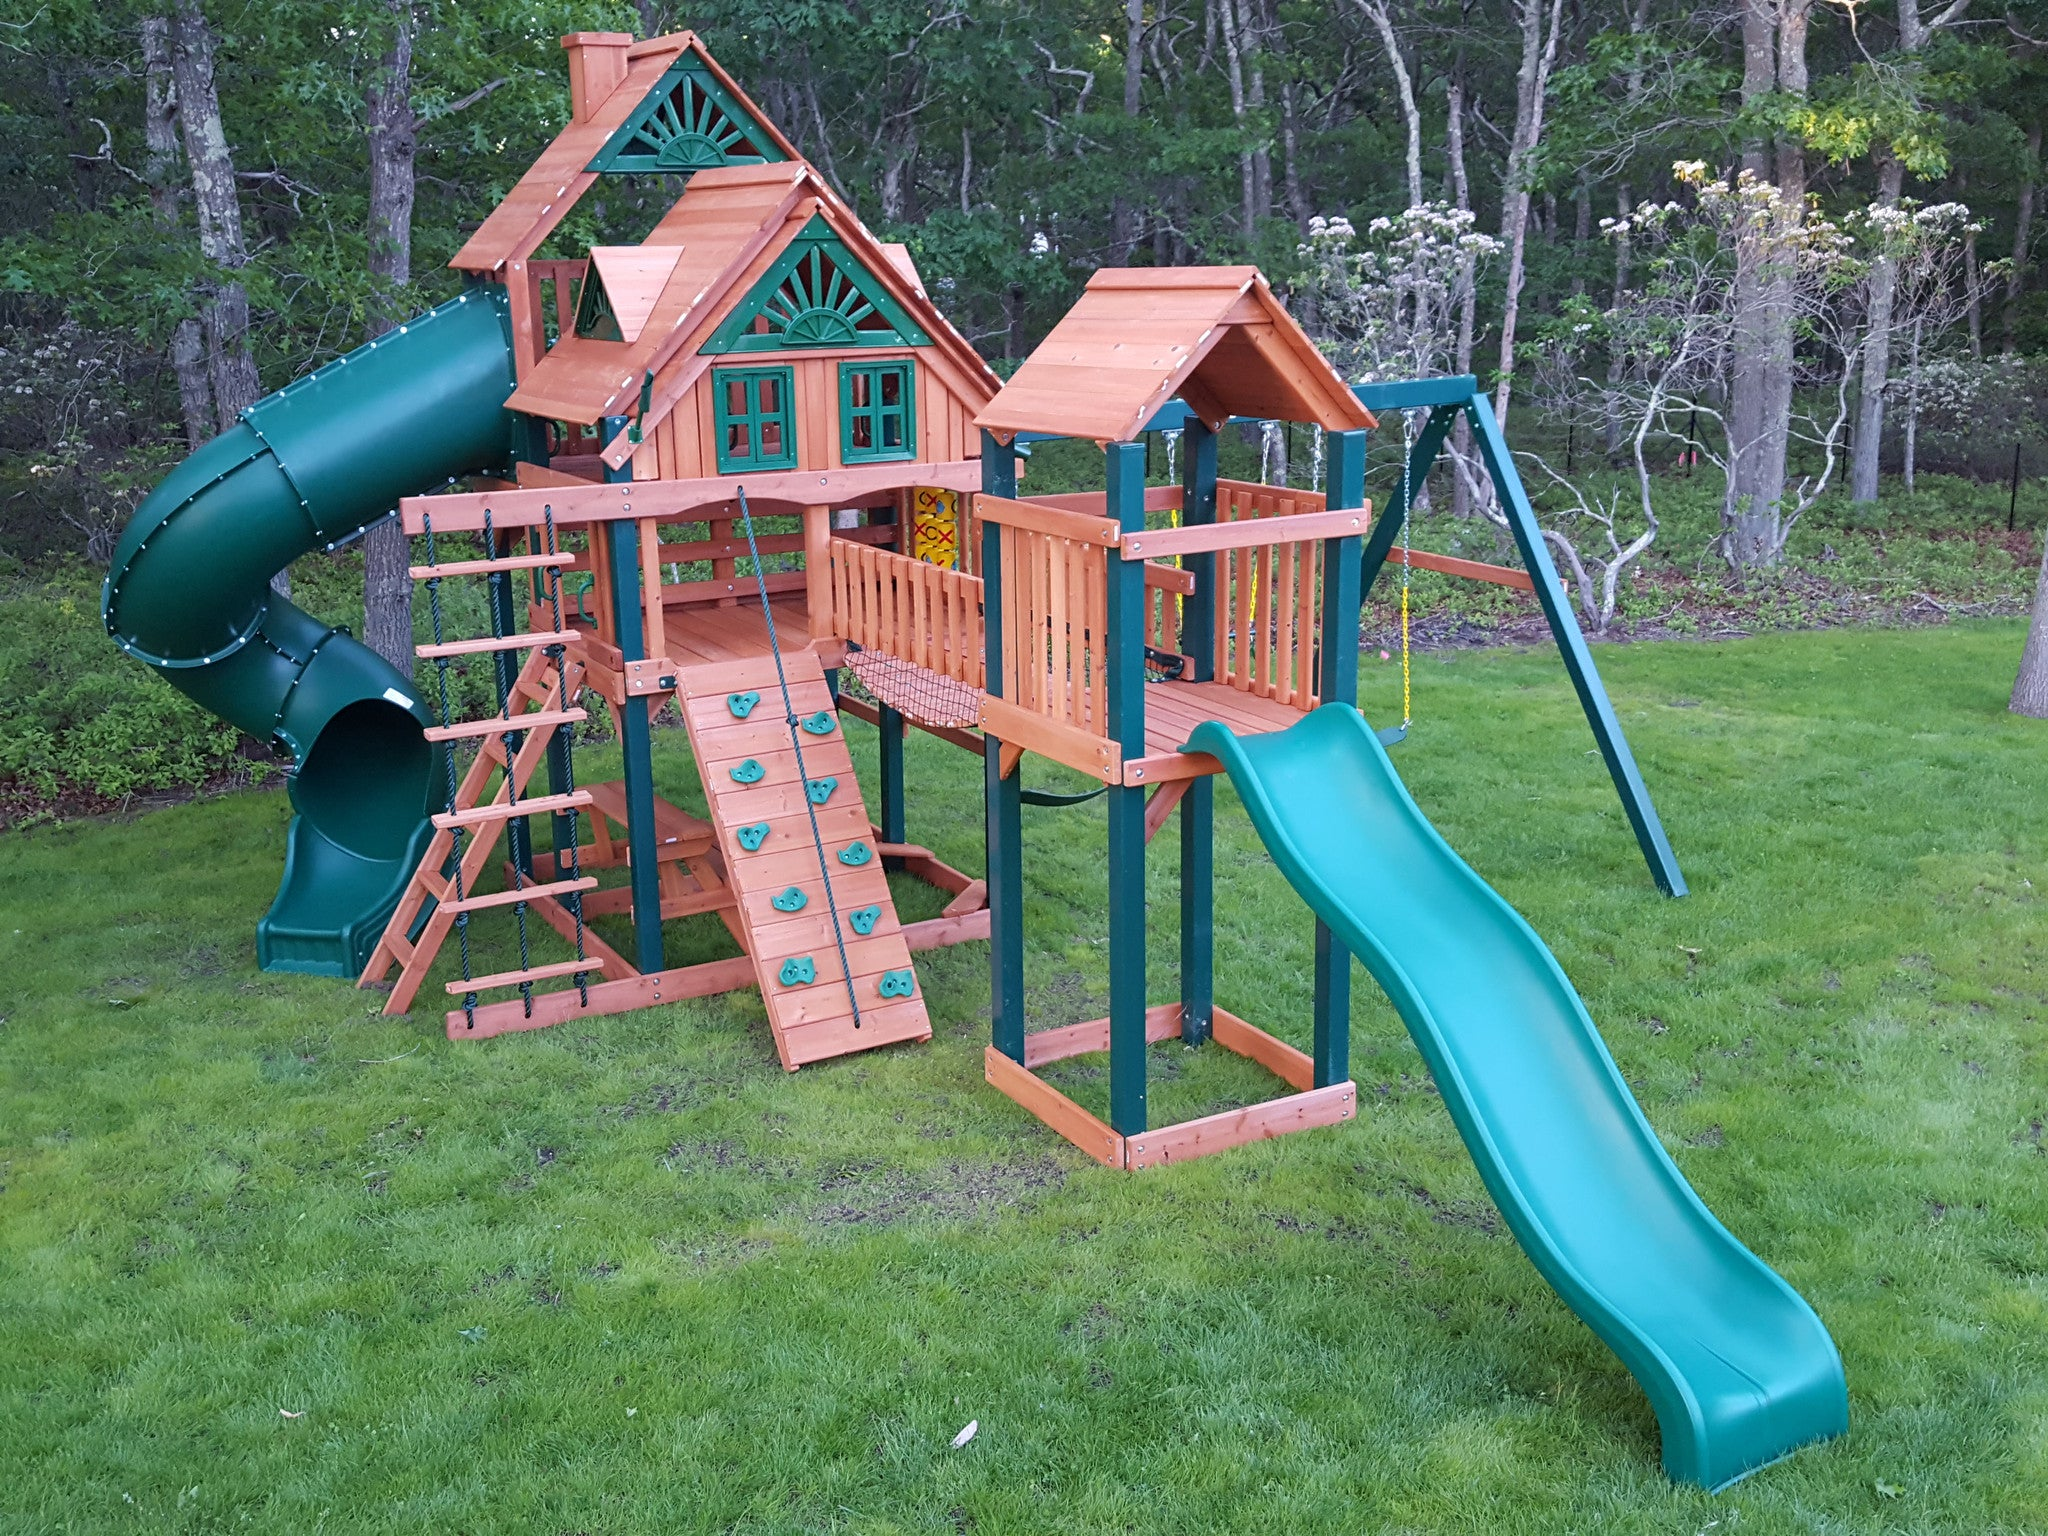 Gorilla Playsets sales and installation from Scottsswingset